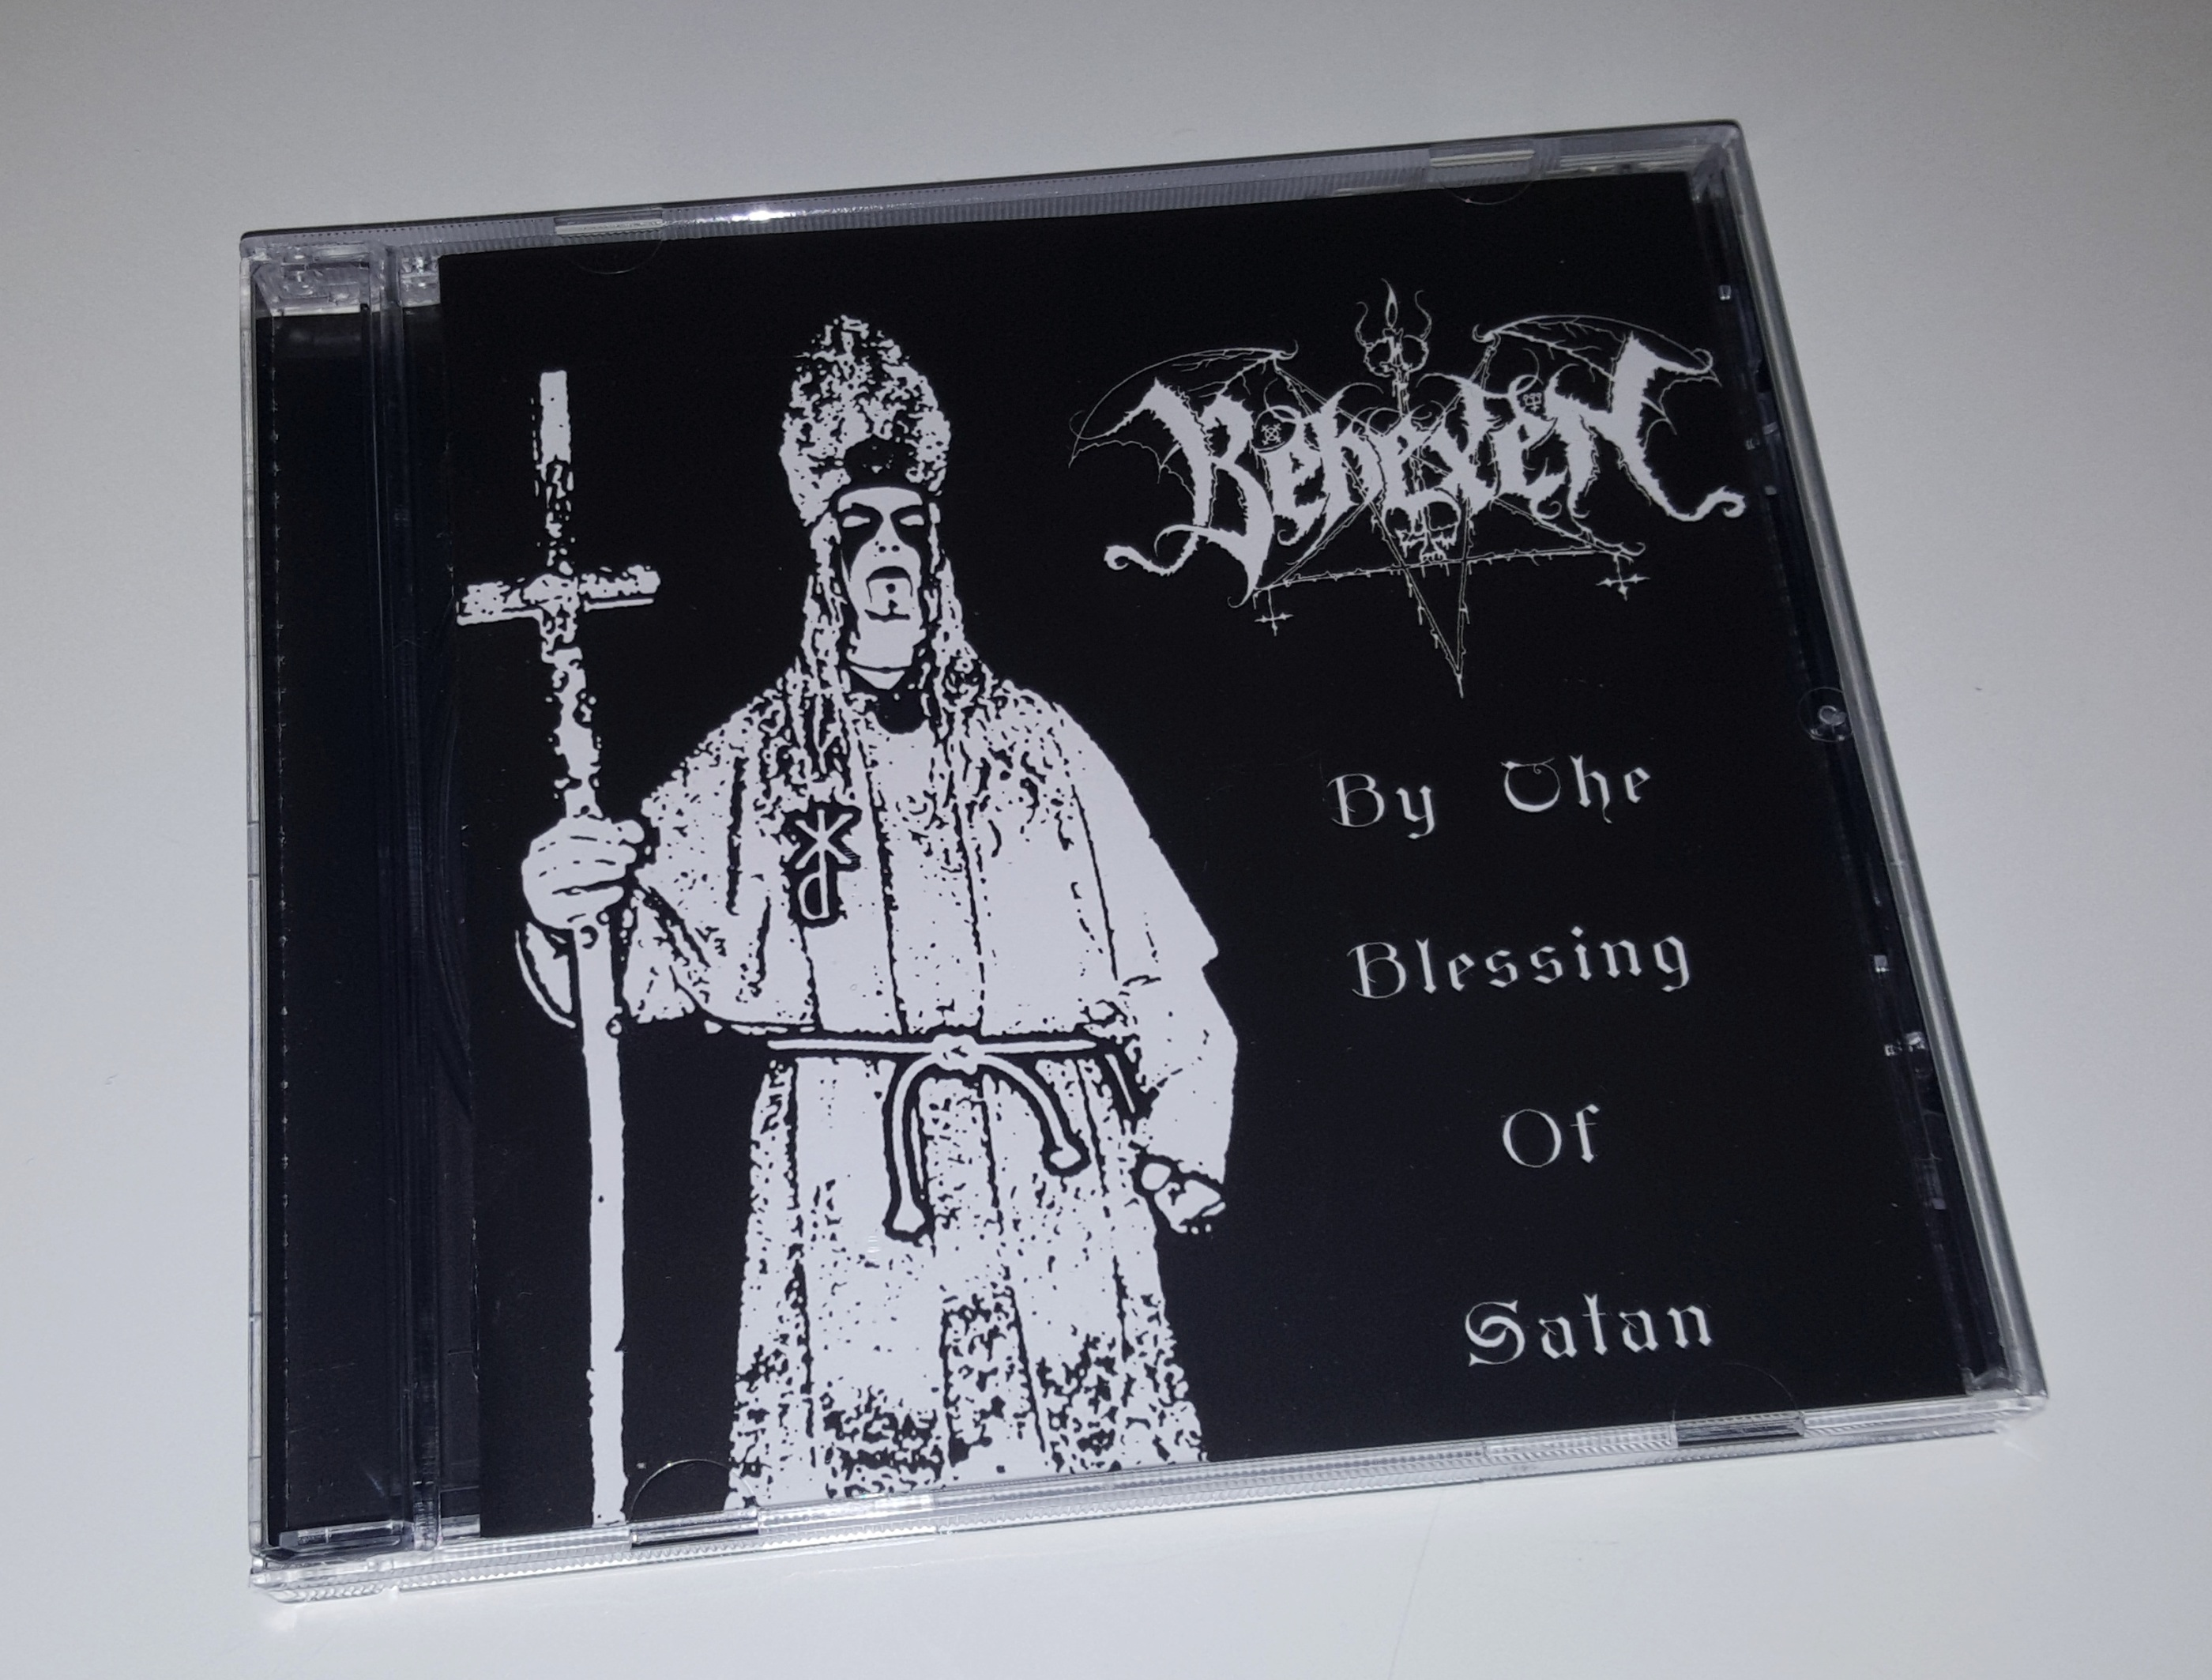 BEHEXEN - By The Blessing of Satan CD